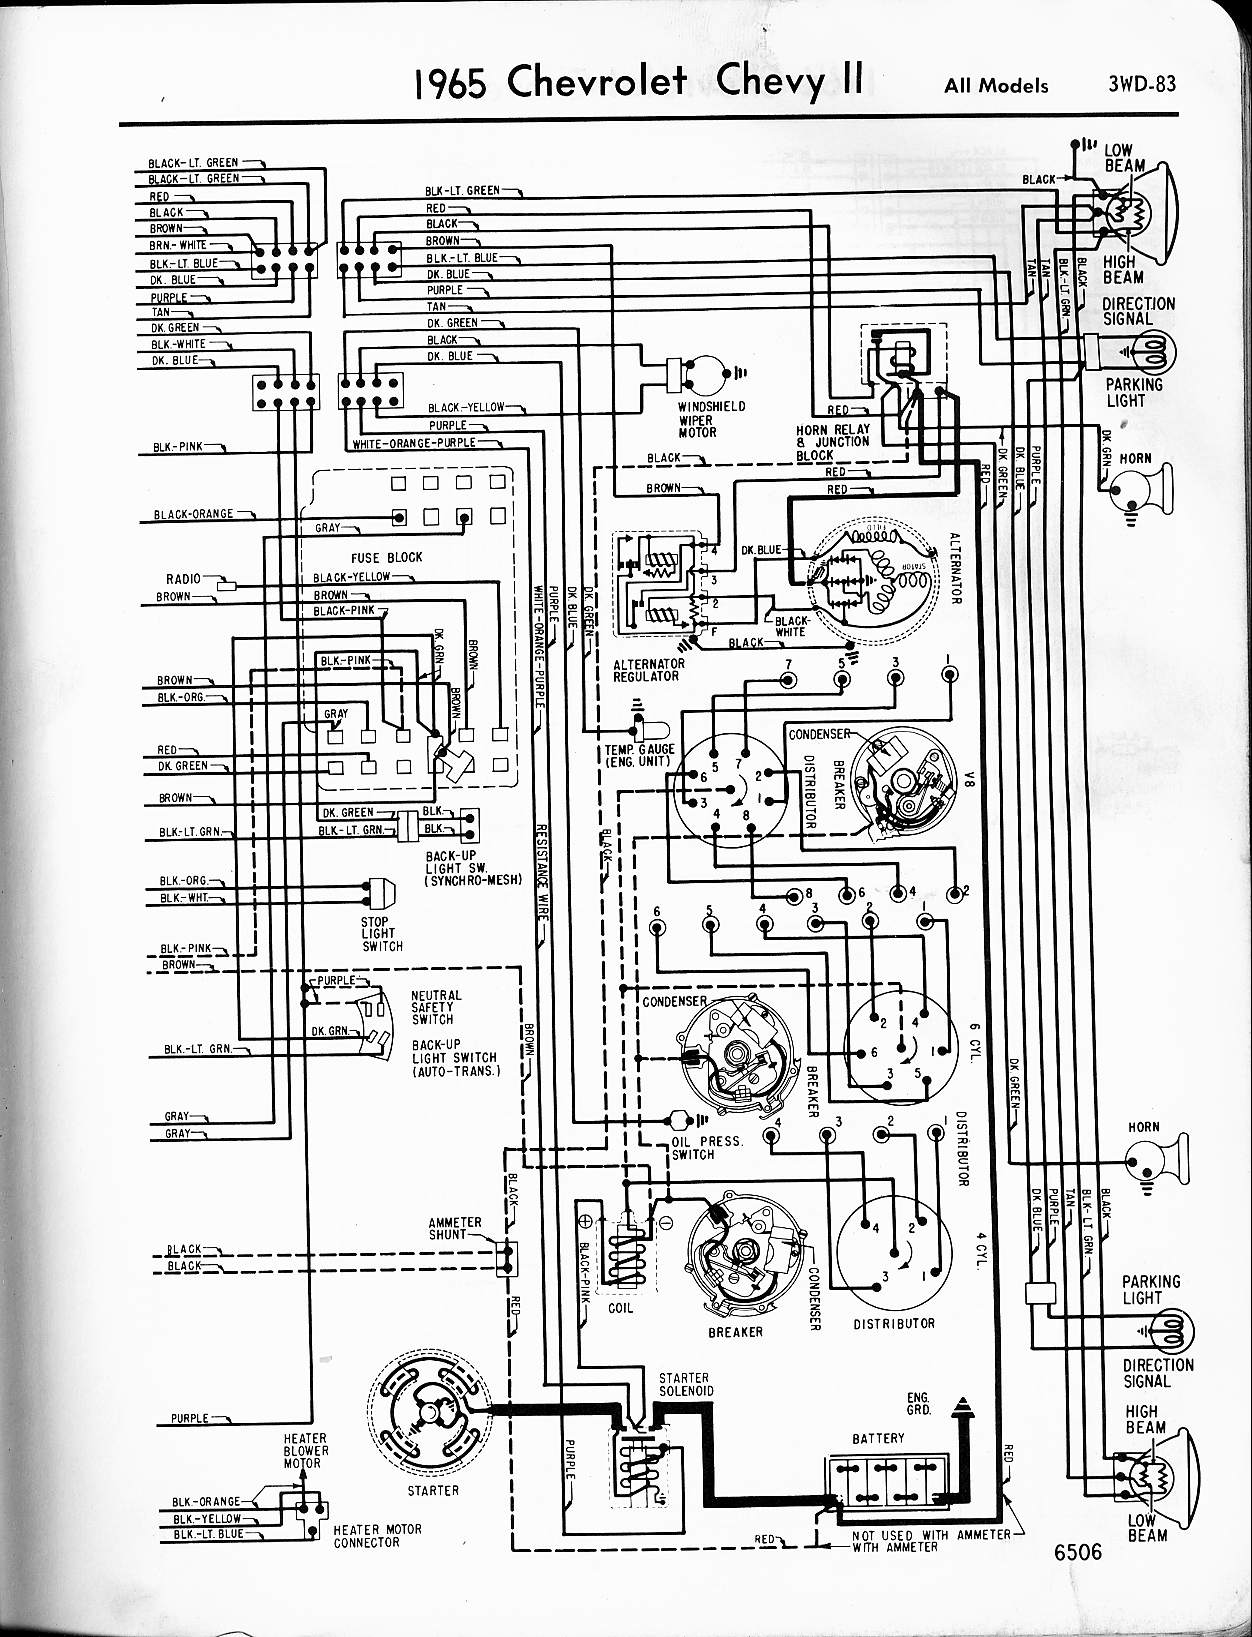 1972 c10 wiring diagram wiring diagrams best 1971 chevy wiring diagrams data wiring diagram 1972 c10 dash wiring diagram 1972 c10 wiring diagram